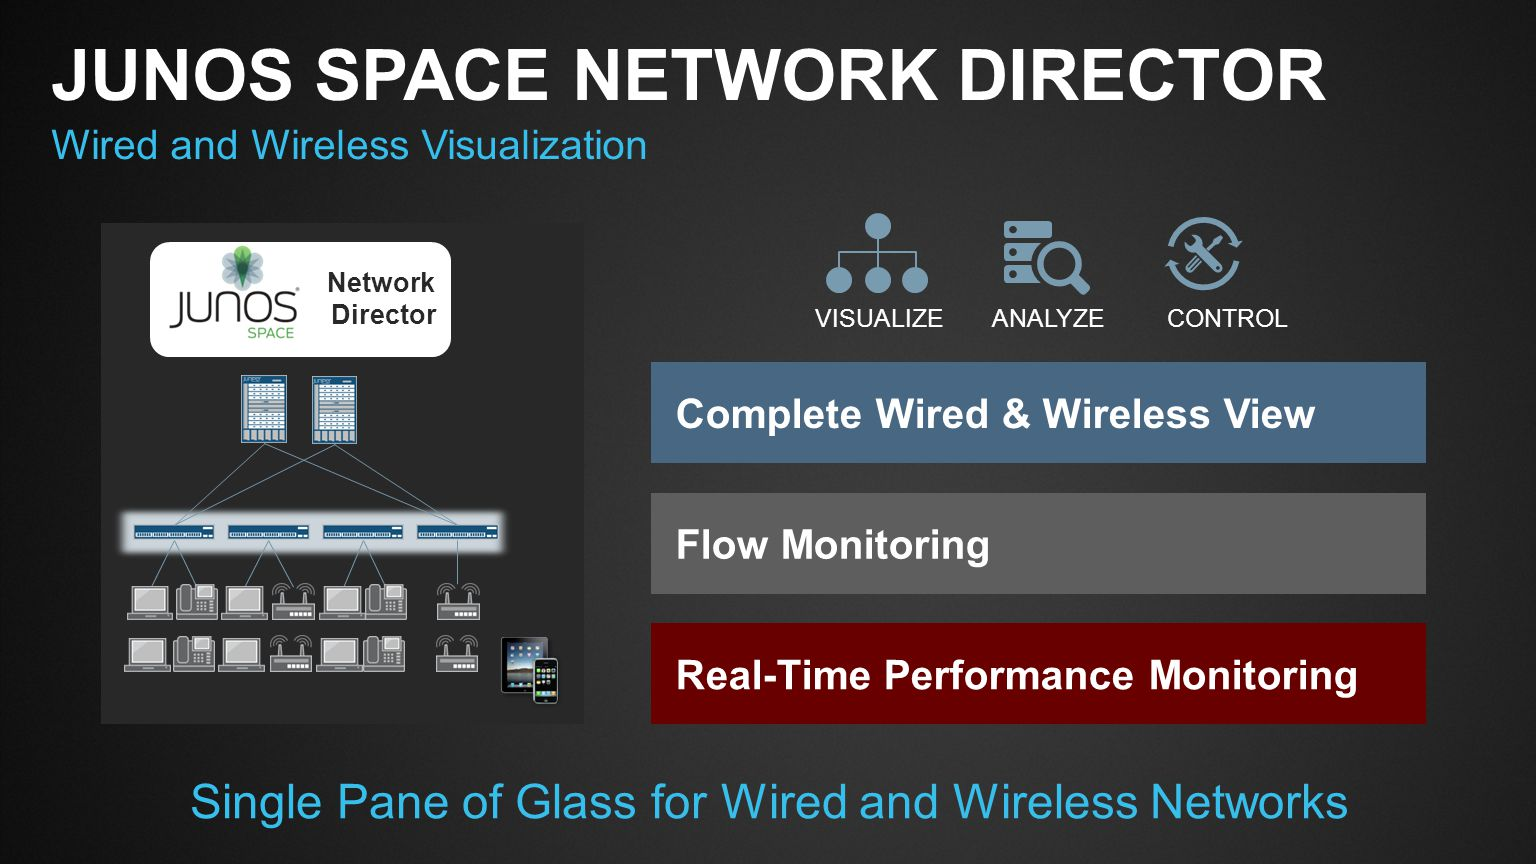 Slide Type Juniper Networks Large Venue Template / 16x9 / V6 NETWORK DIRECTOR SMART NETWORK MANAGEMENT FROM A SINGLE PANE OF GLASS Virtual Networks Physical Networks Network Director API Visualize Physical and virtual visualization Analyze Smart and proactive networks Control Lifecycle and workflow automation